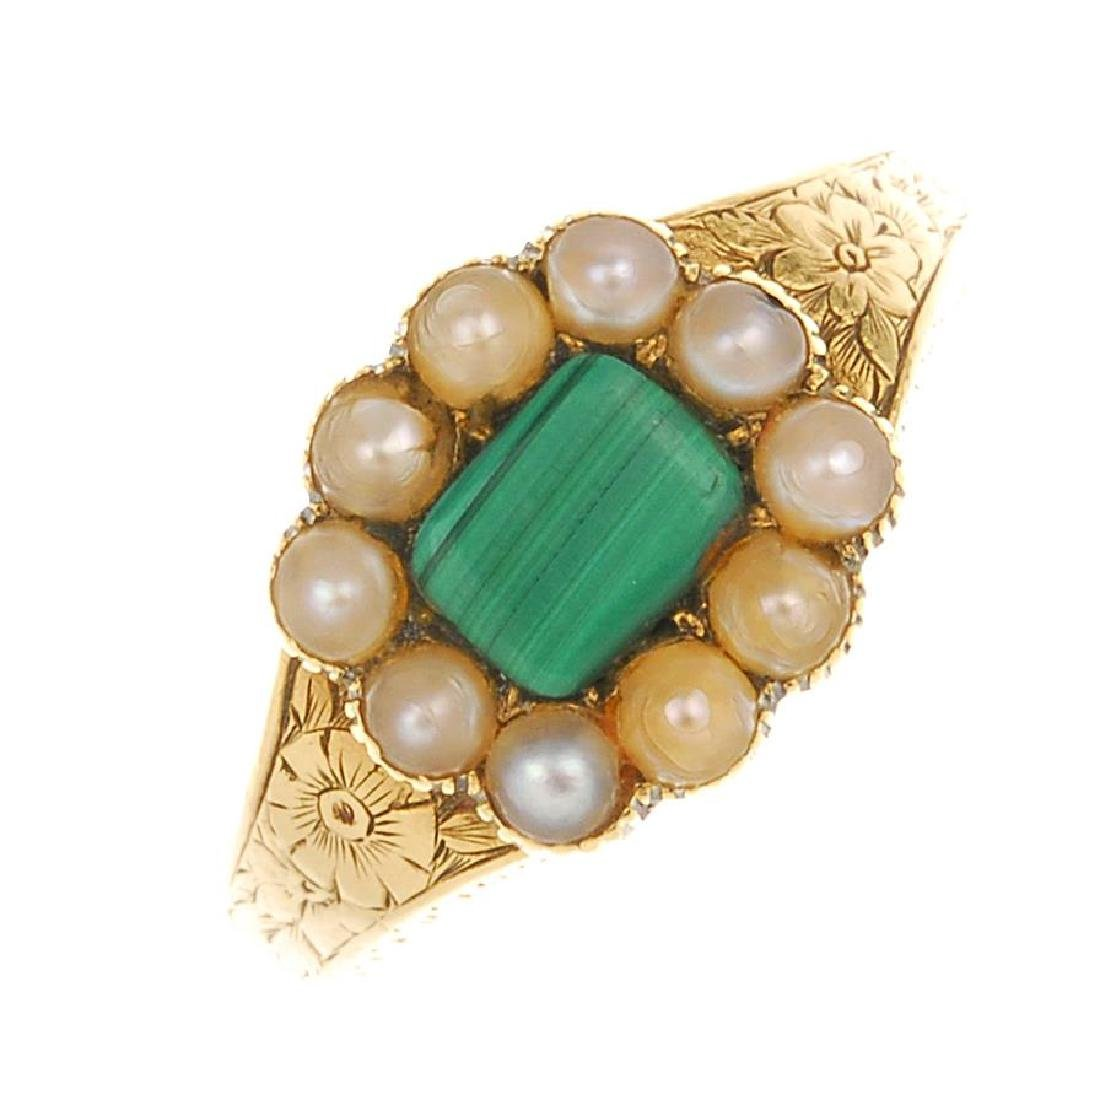 An early Victorian 18ct gold split pearl memorial ring.